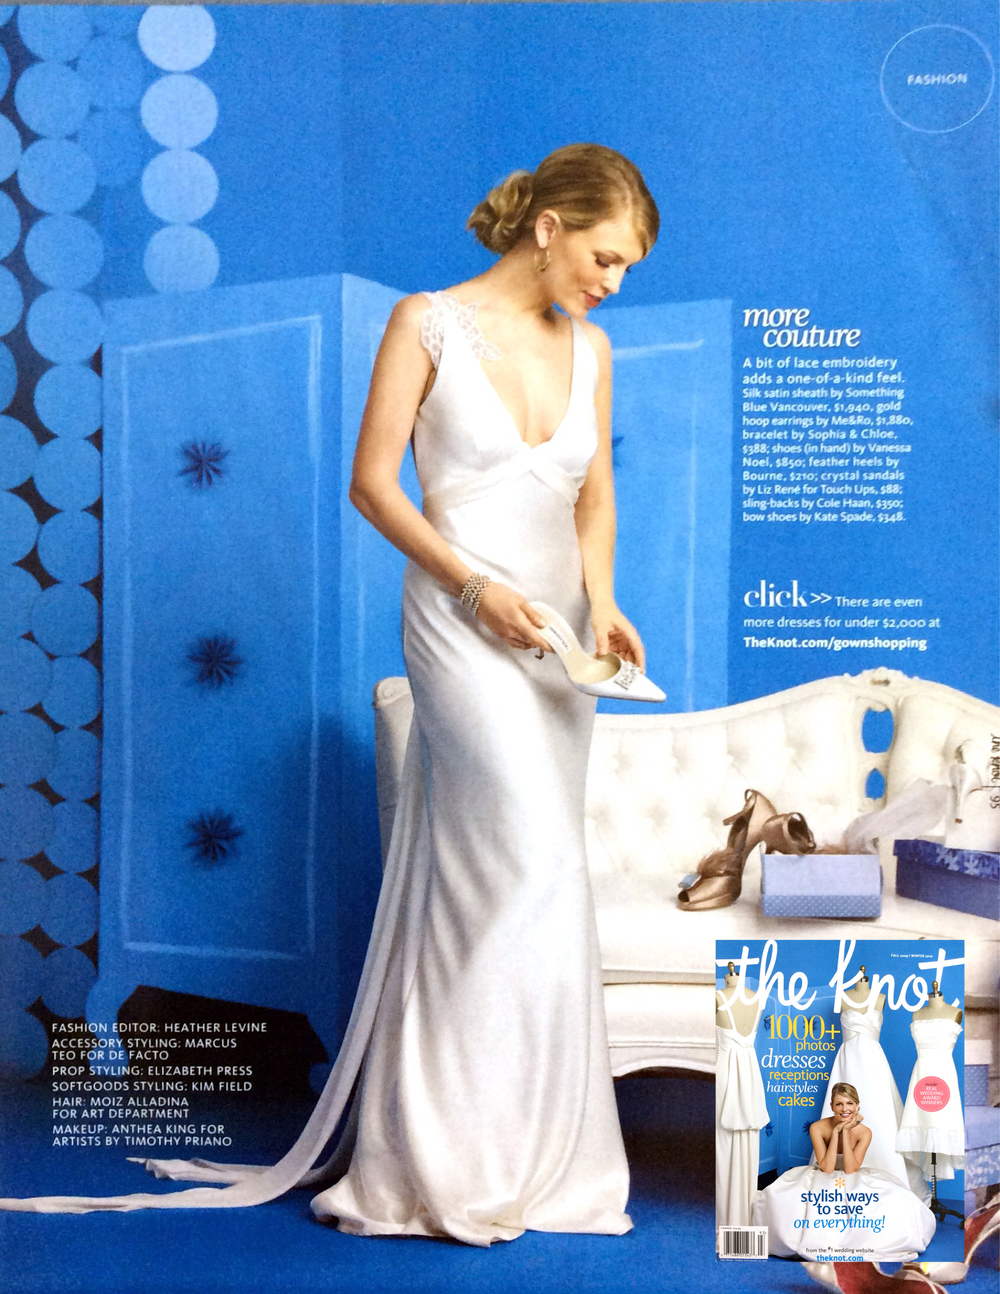 Escape gown in The Knot magazine